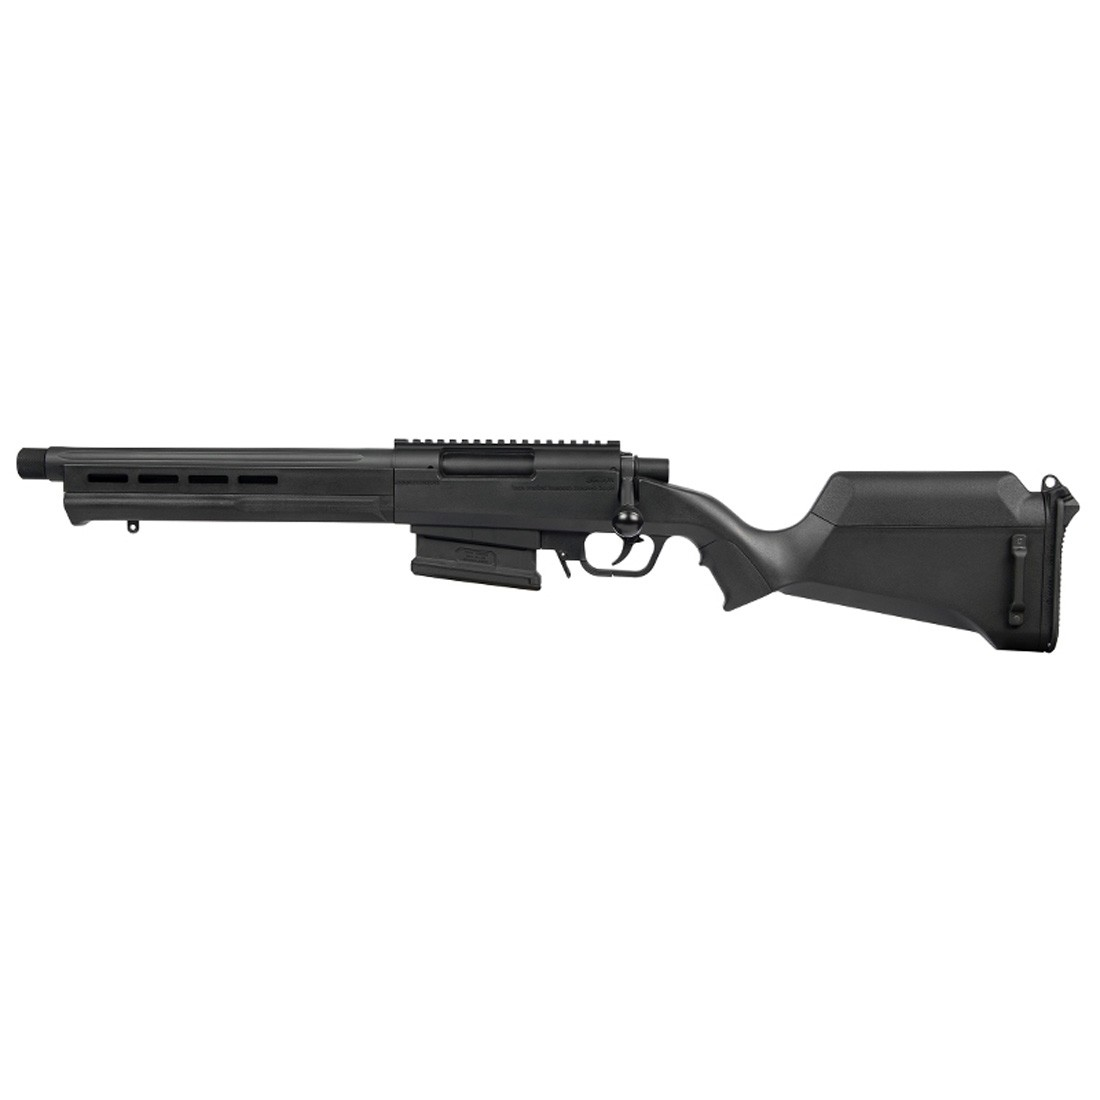 Ares Amoeba Striker AS02 Spring Sniper Scout Rifle - Black